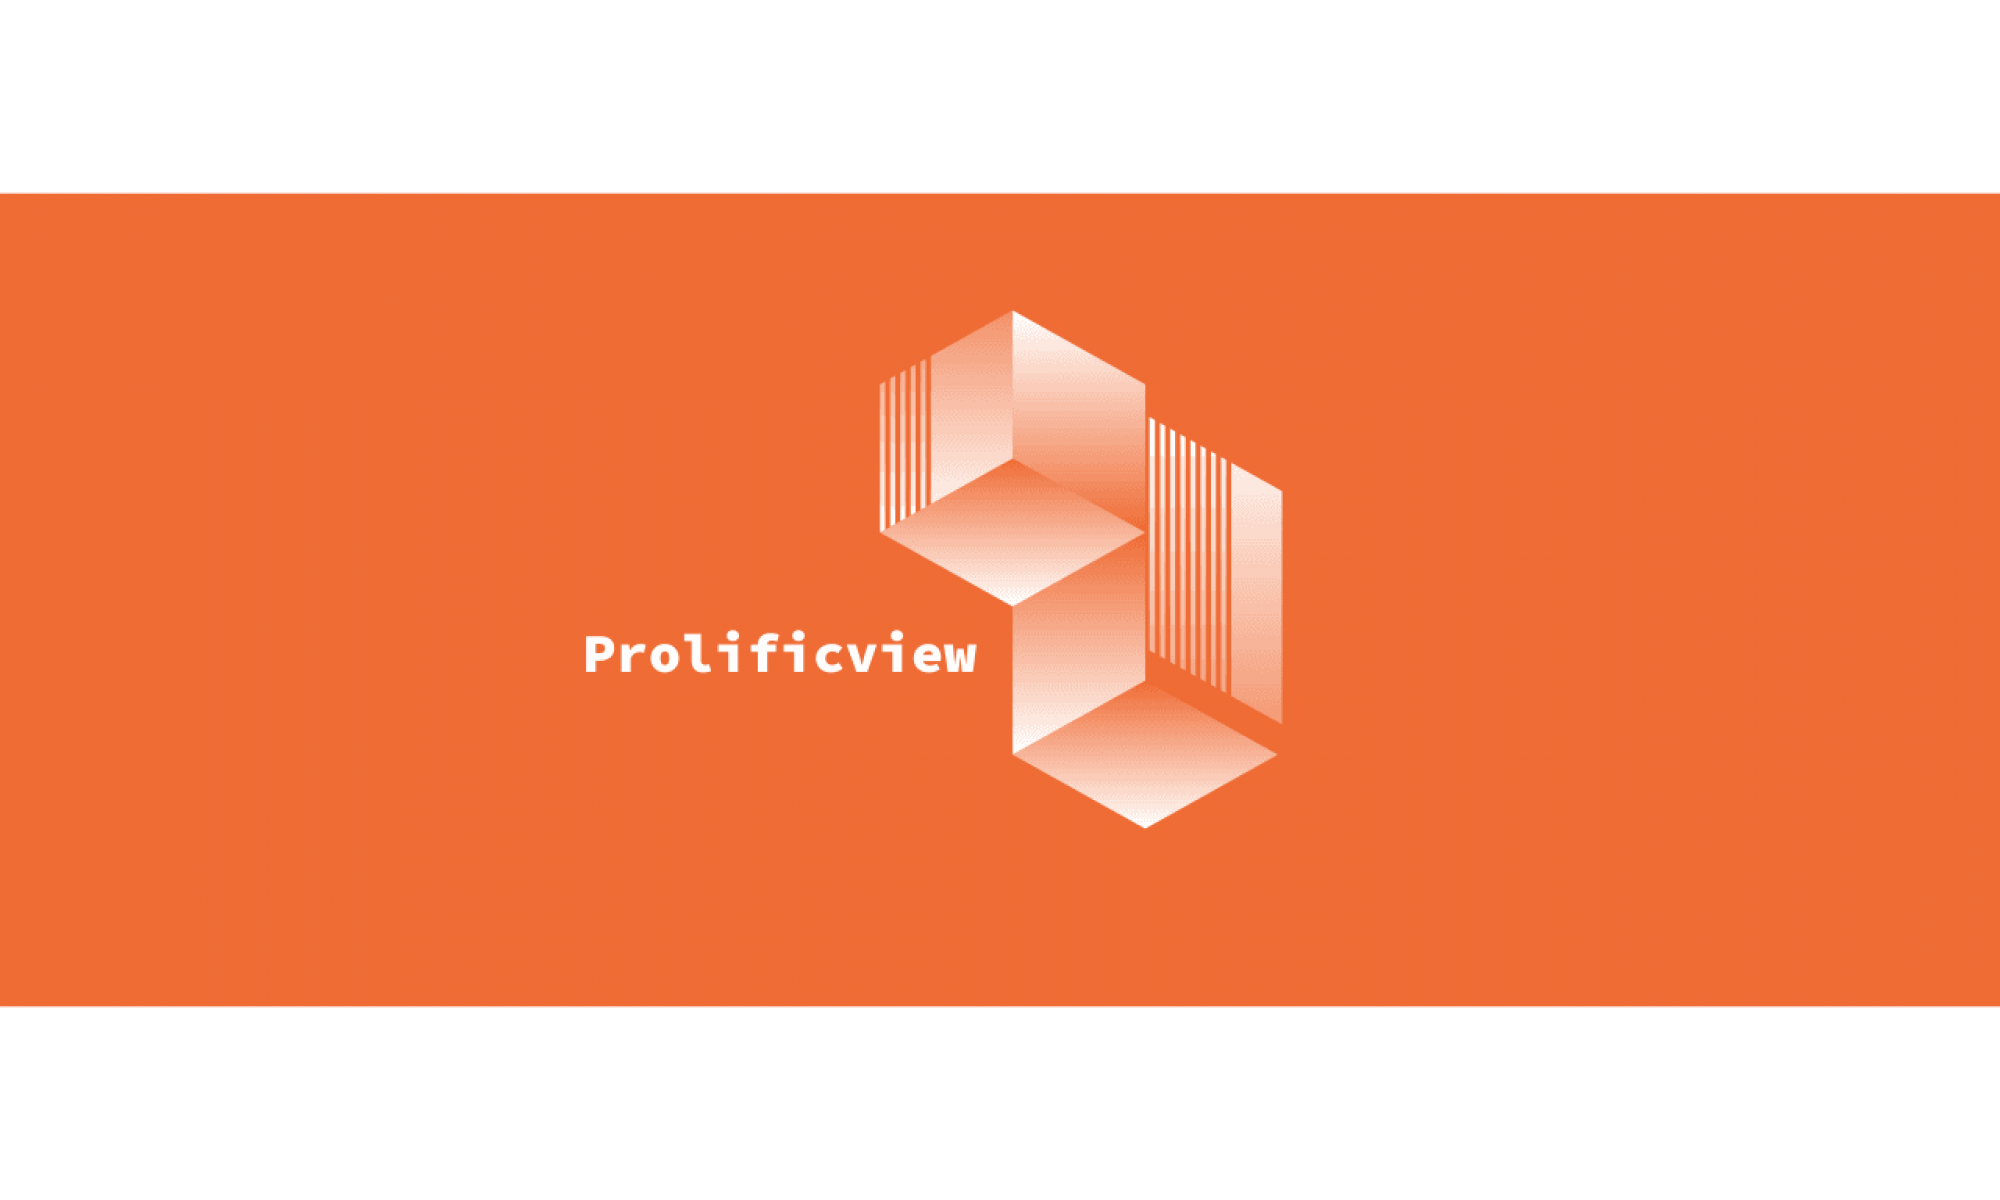 Prolificview